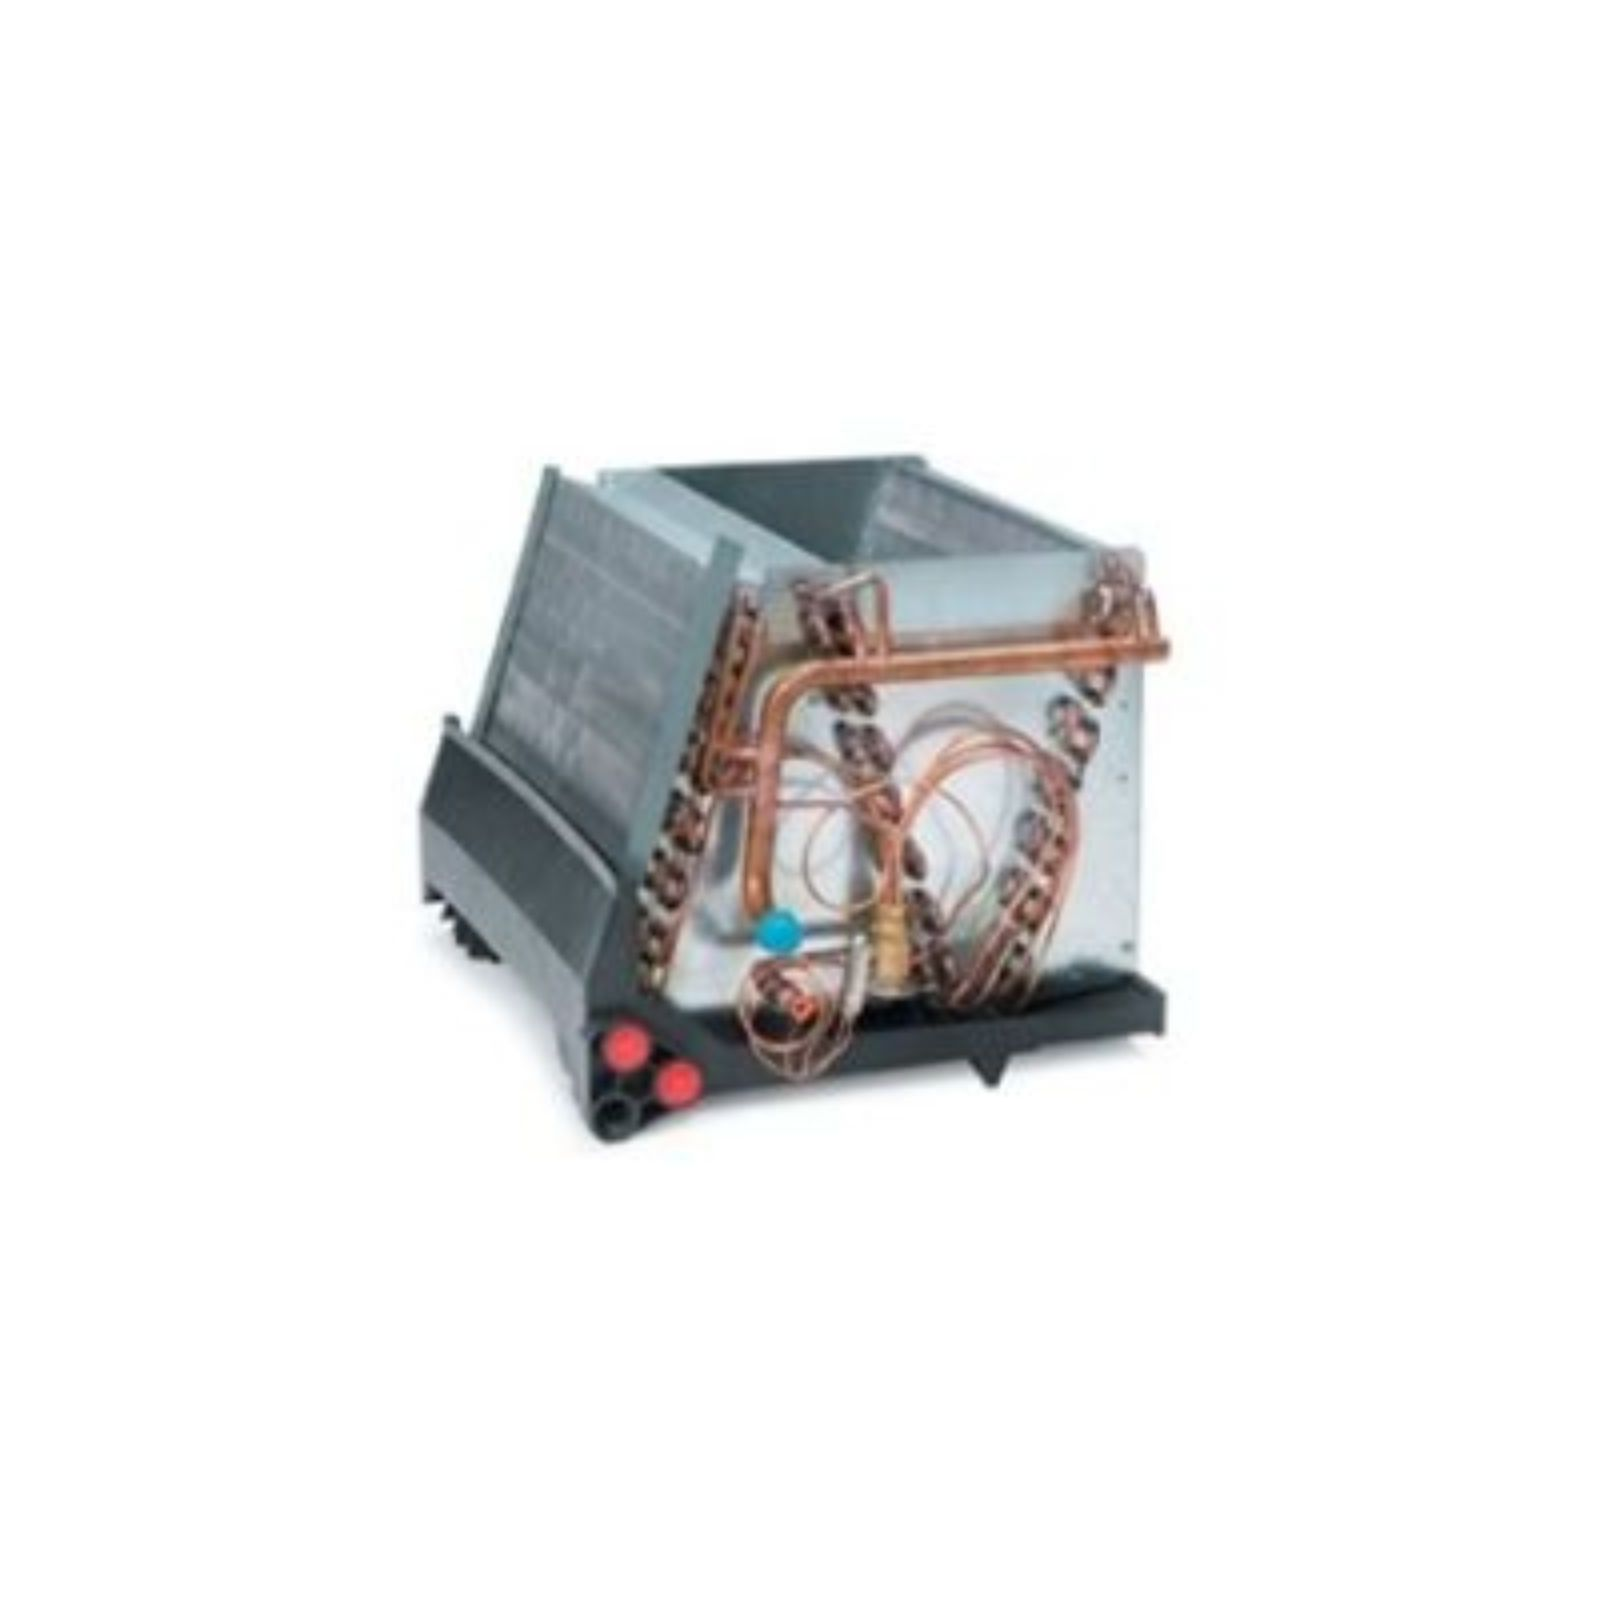 "Rheem RCSM-HU3621CU - 3 Ton 16 SEER 21"" Replacement Upflow/Downflow Uncased Coil - R410A for use in HPL Air Handlers"